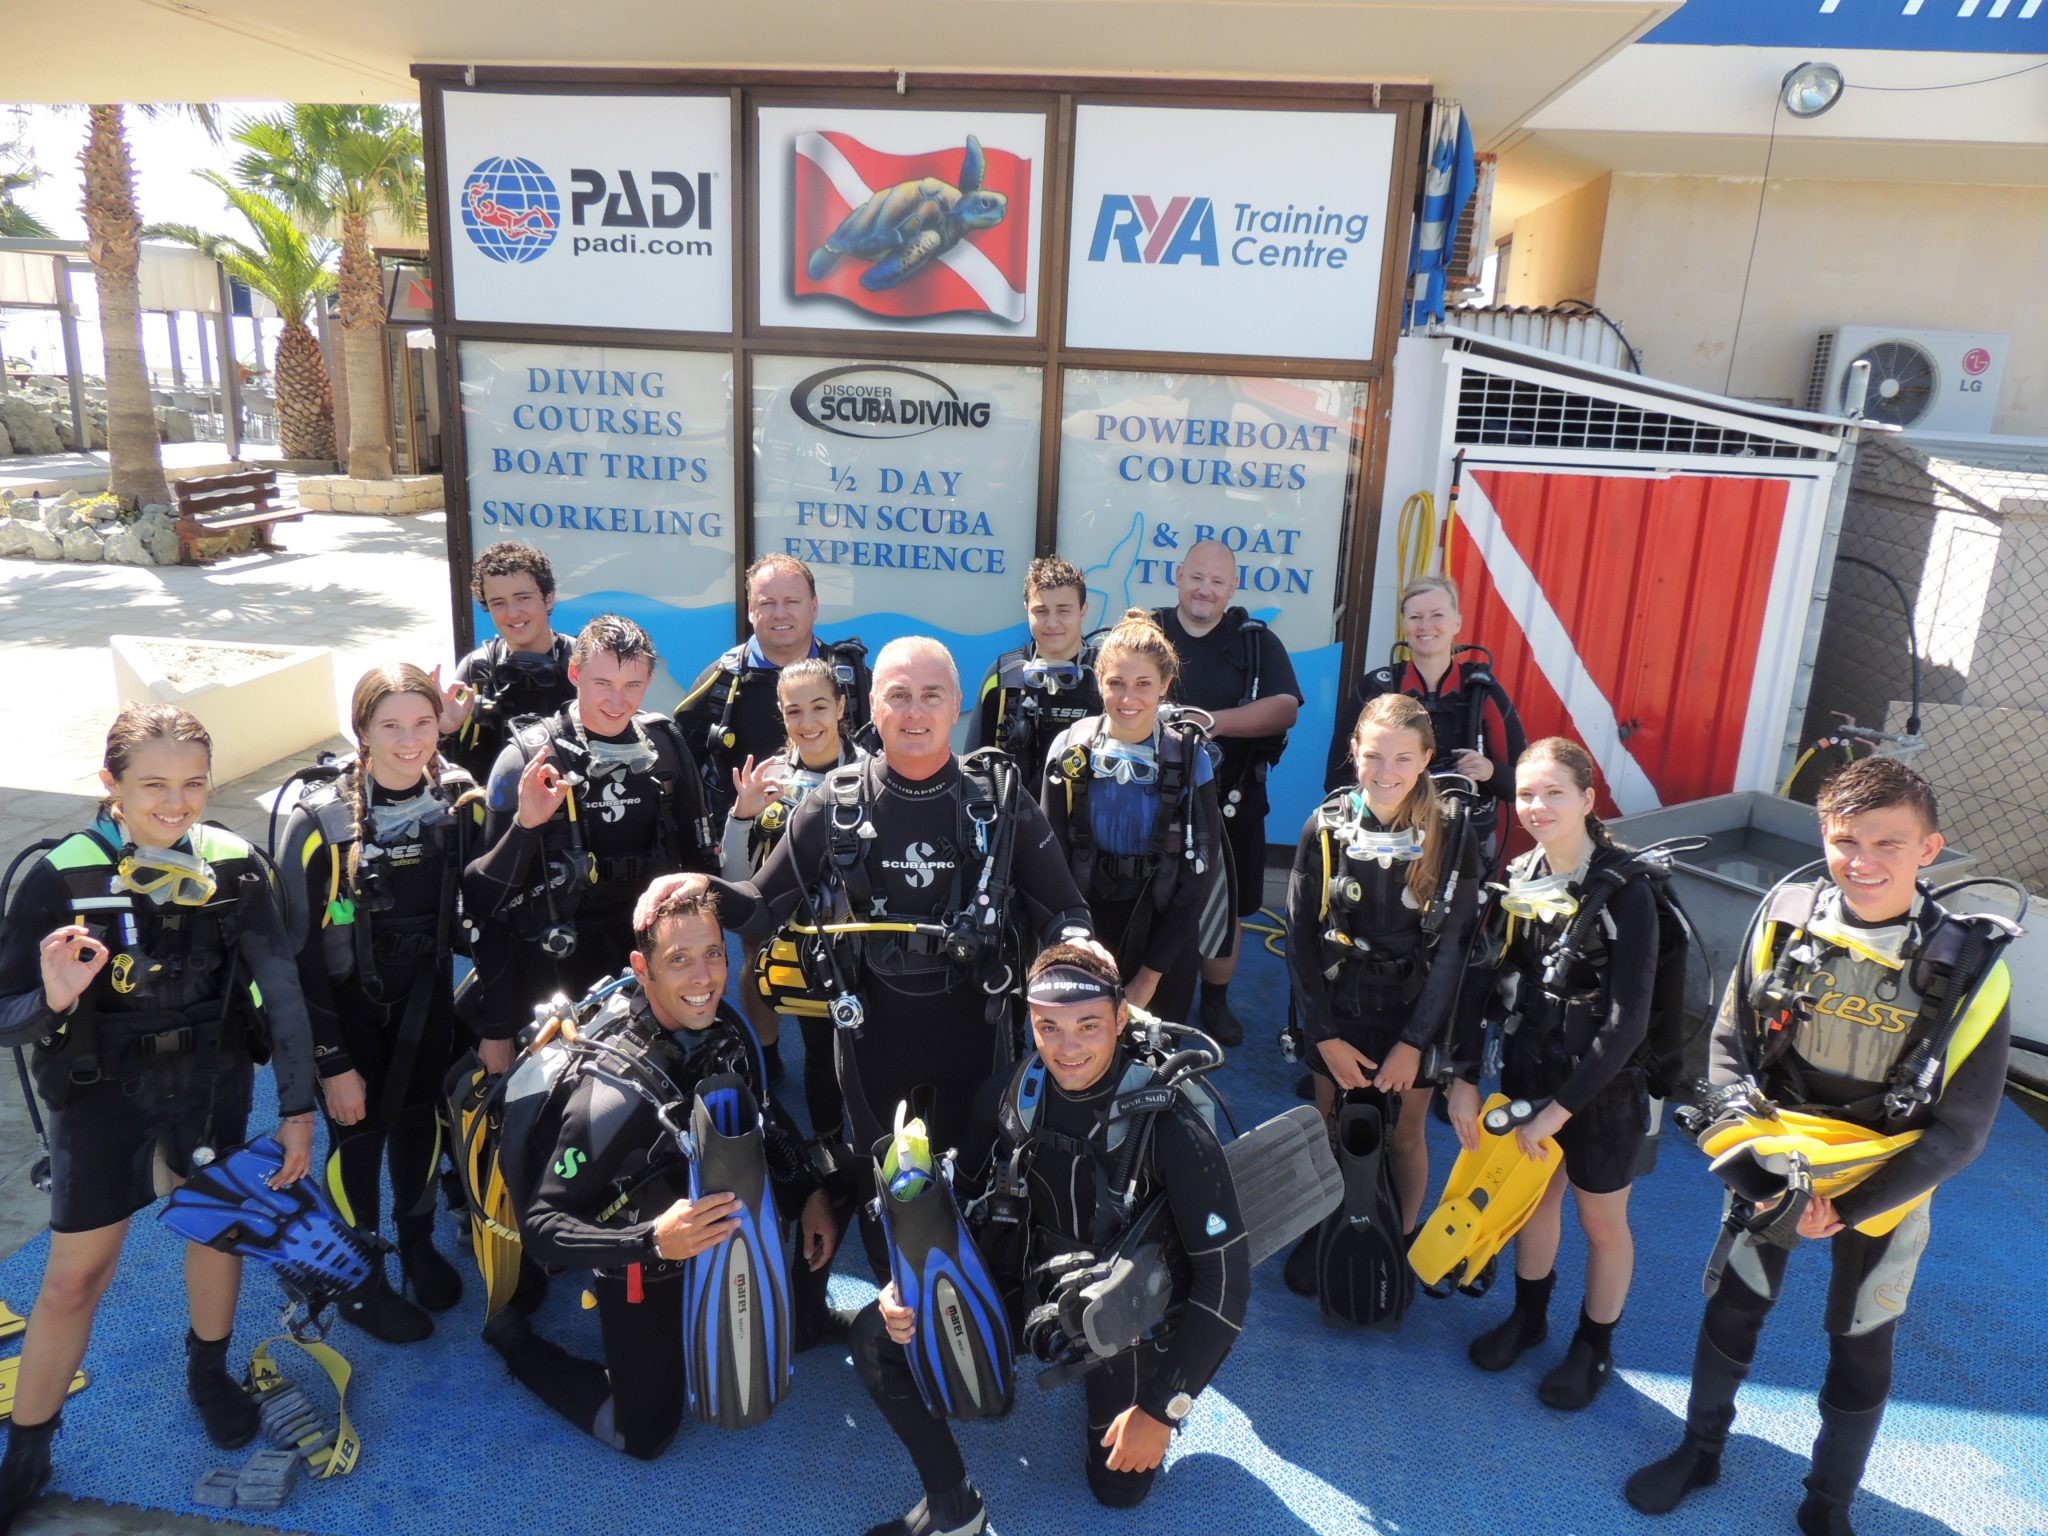 Diving group, ready to dive, ok, diving